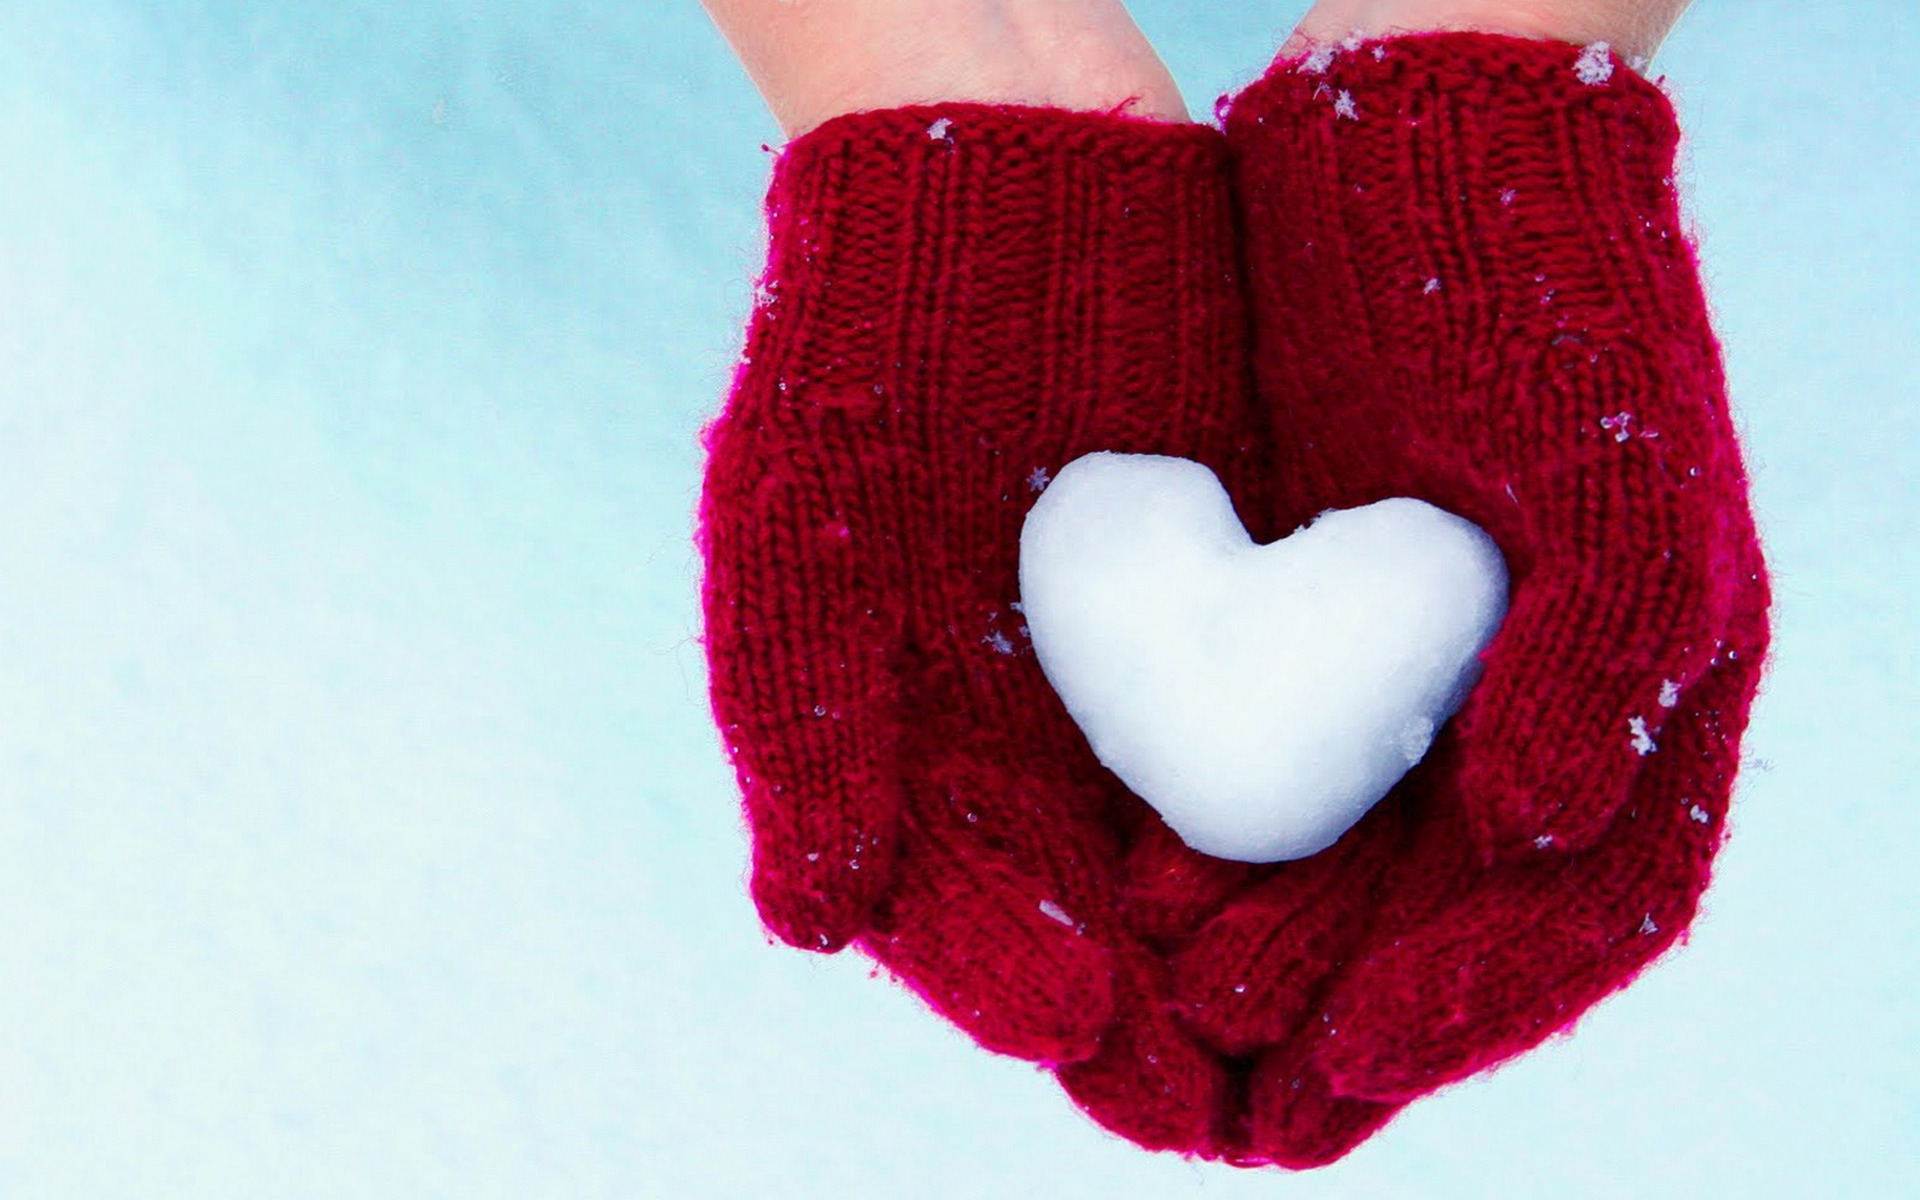 Christmas Heart.Christmas Heart Wallpaper 1920x1200 26282